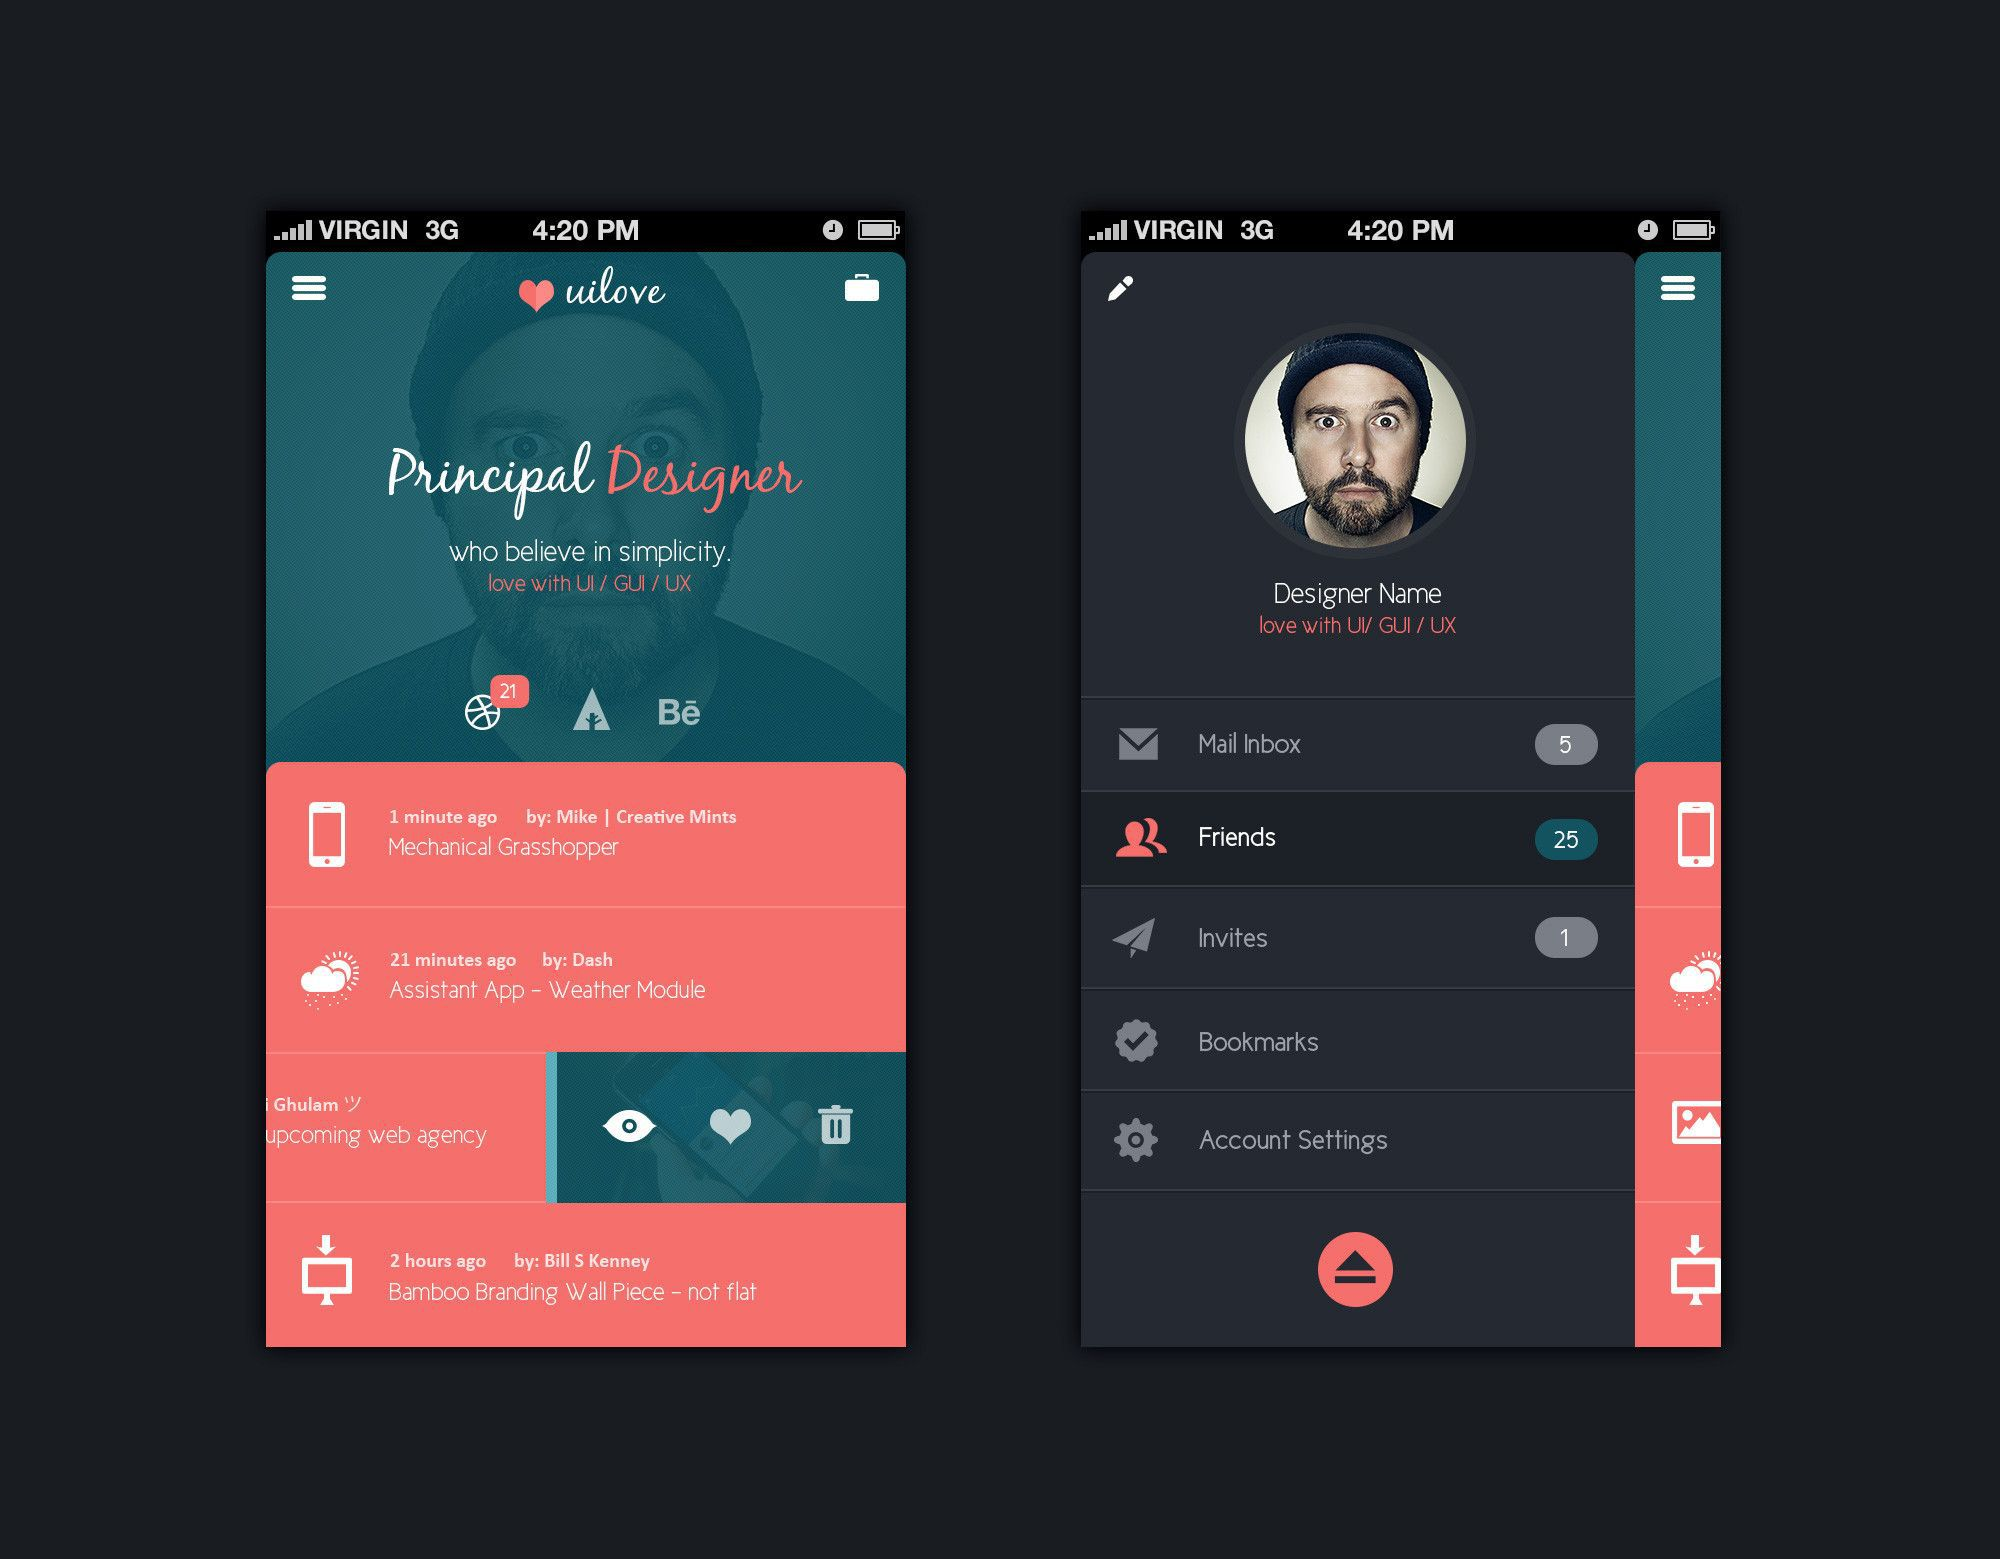 003 Beautiful Mobile App Design Template Highest Clarity  Size Free Download Ui PsdFull